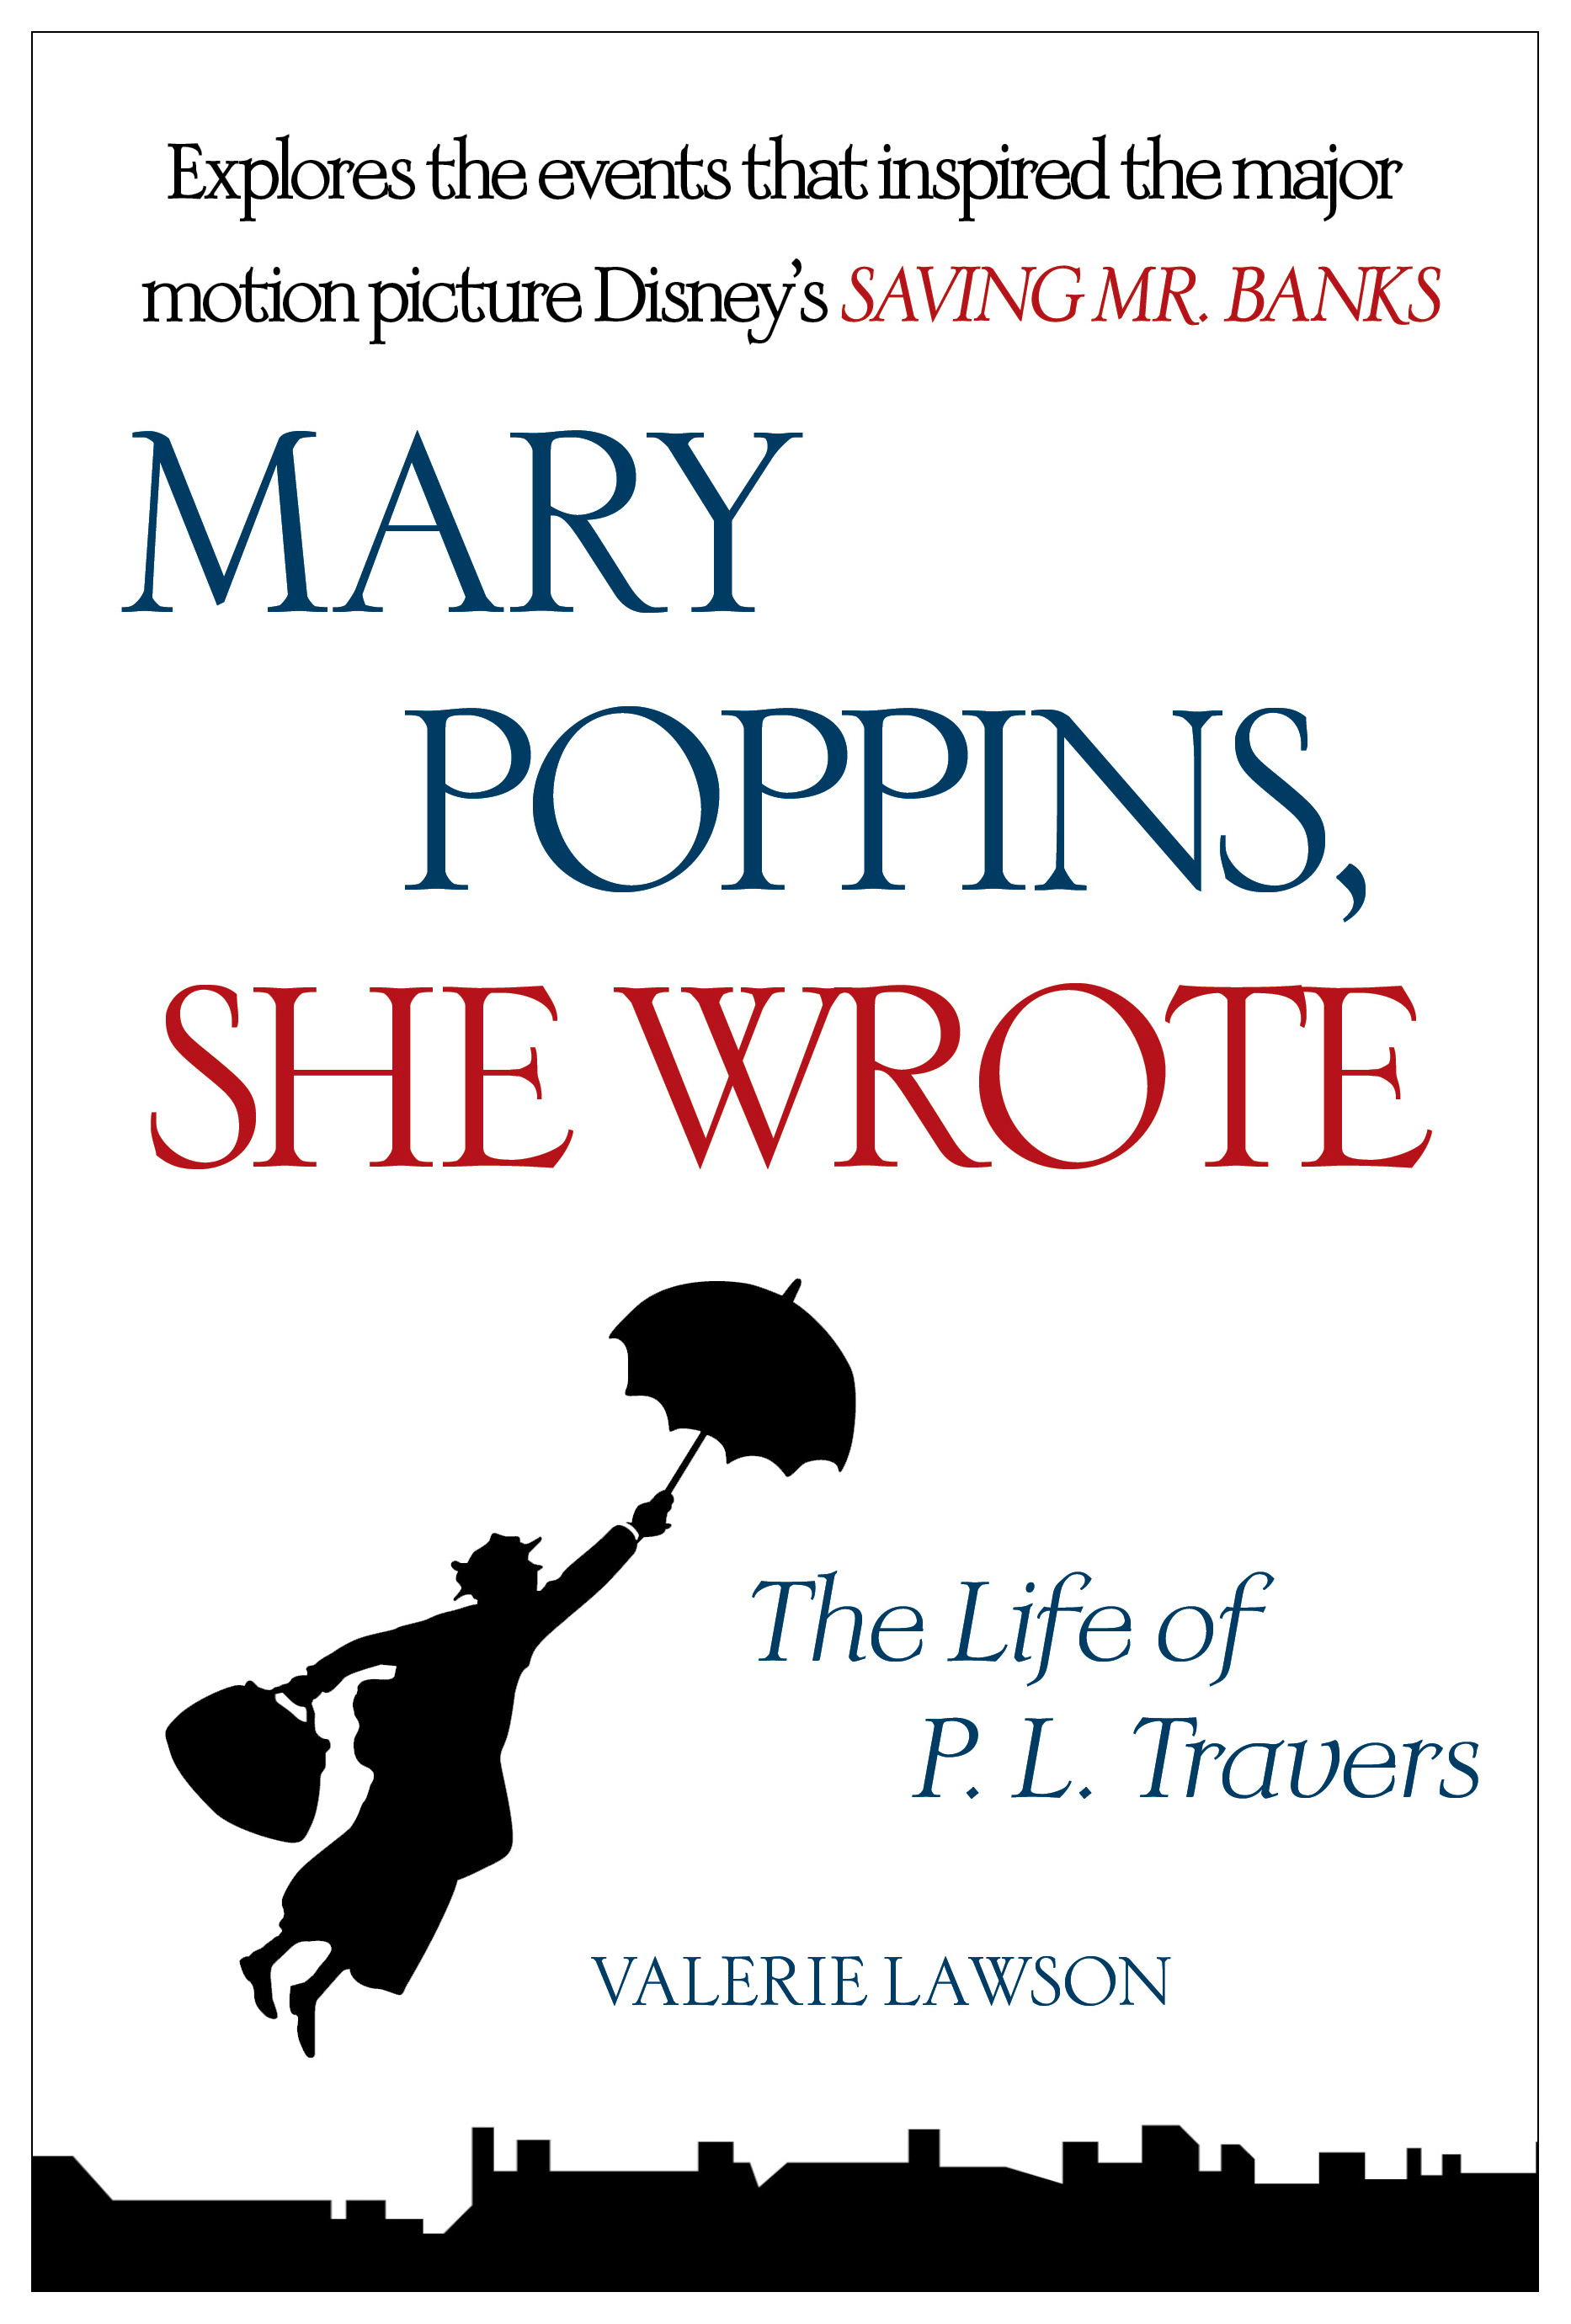 Mary-poppins-she-wrote-9781476762920_hr